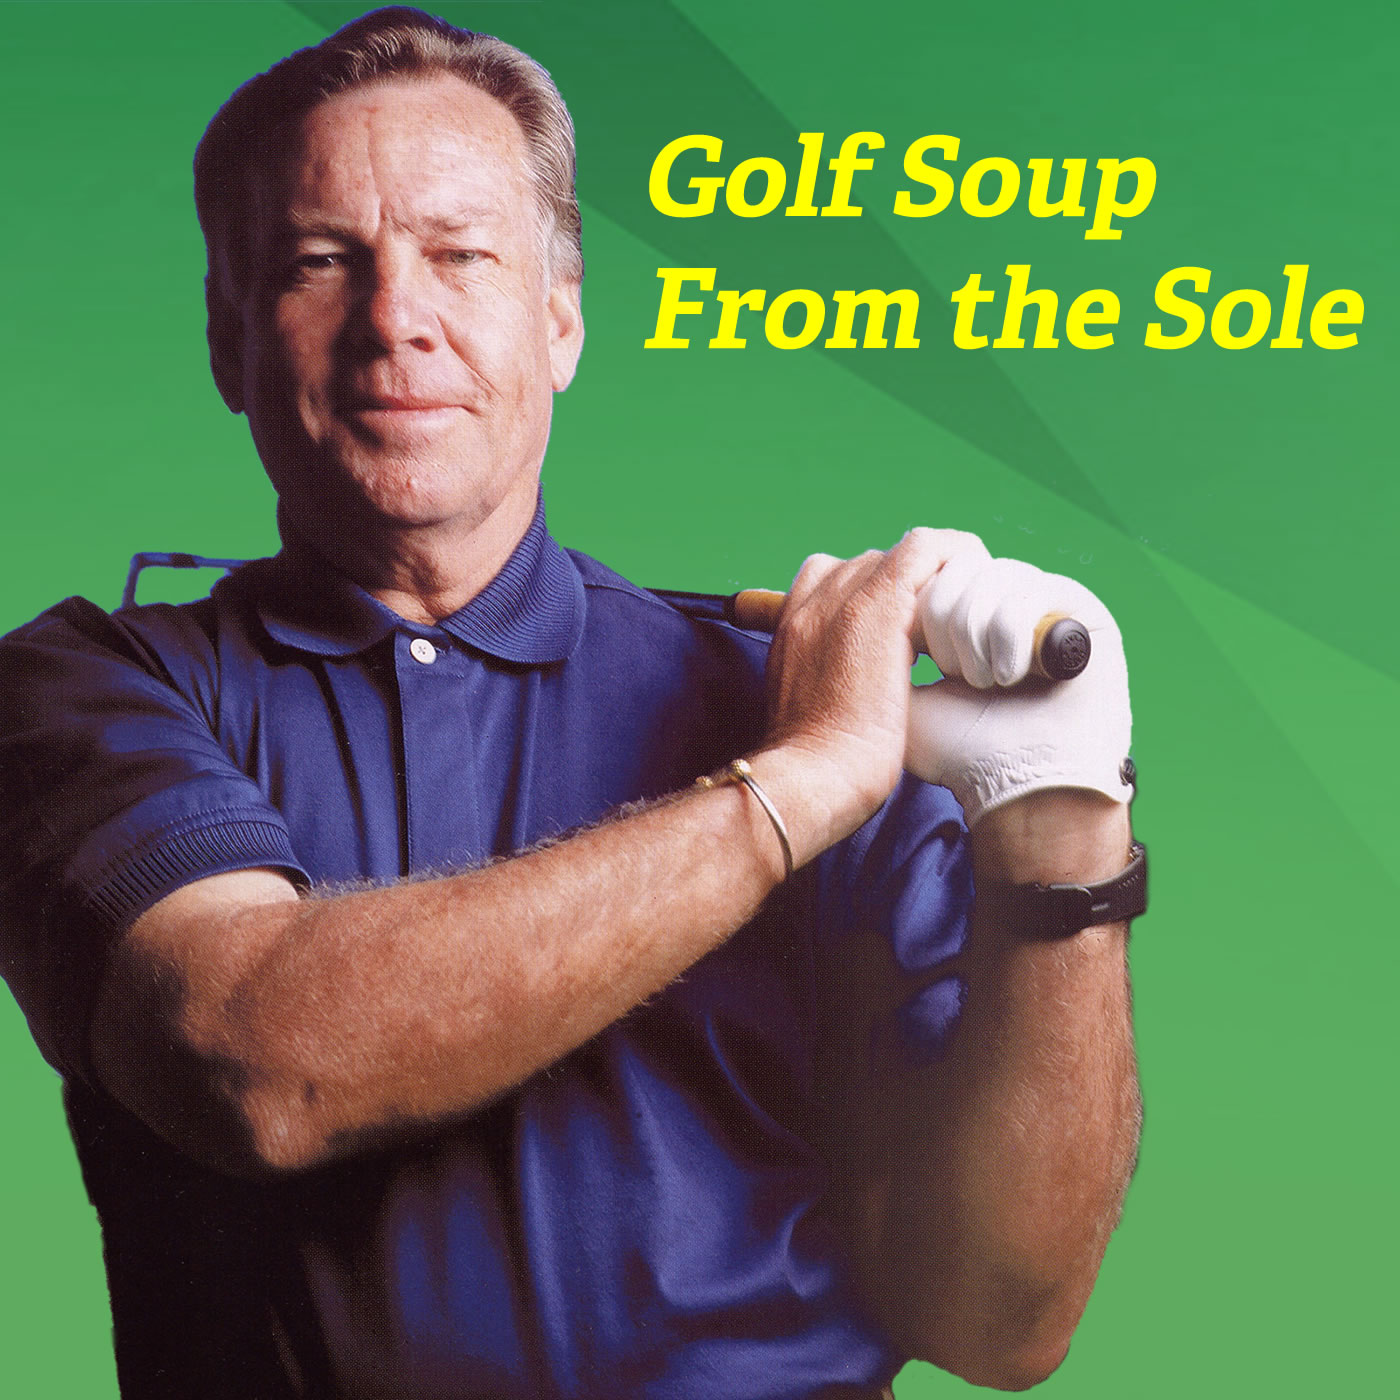 Golf Soup with Sole